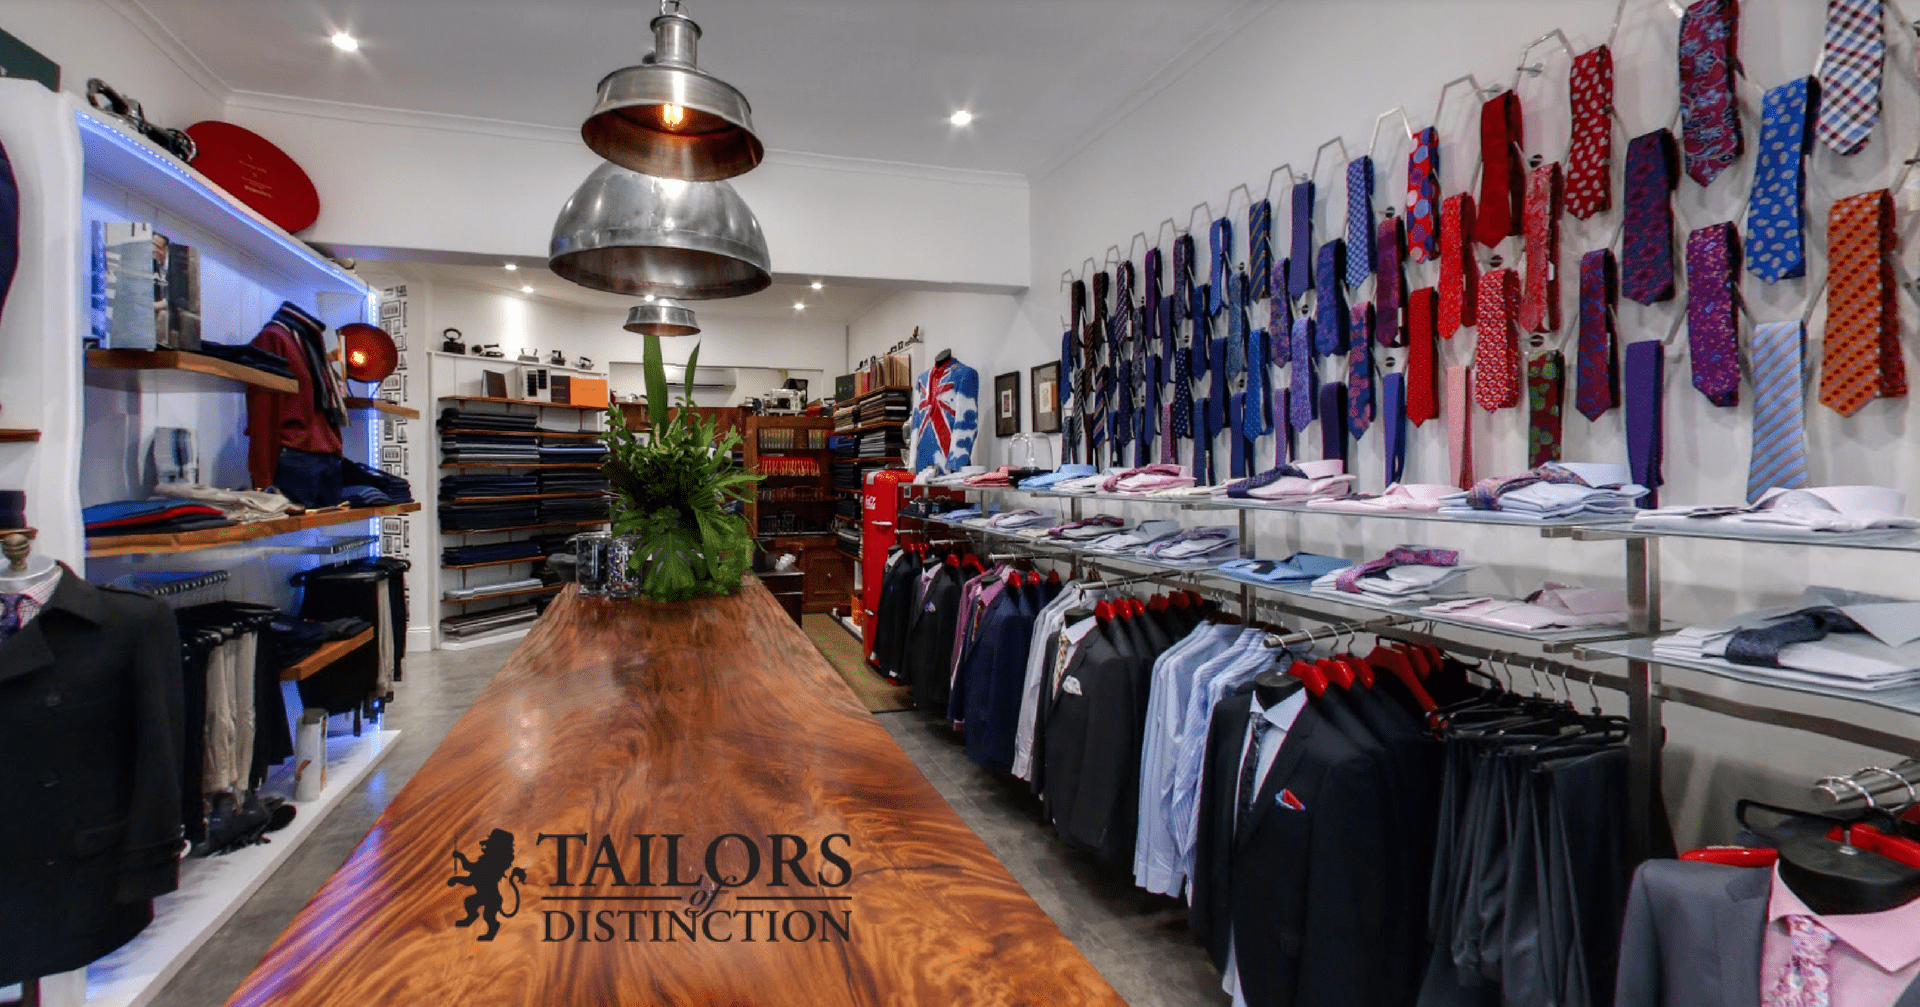 Tailors-of-distinction-banner-by-glamorazzi-1